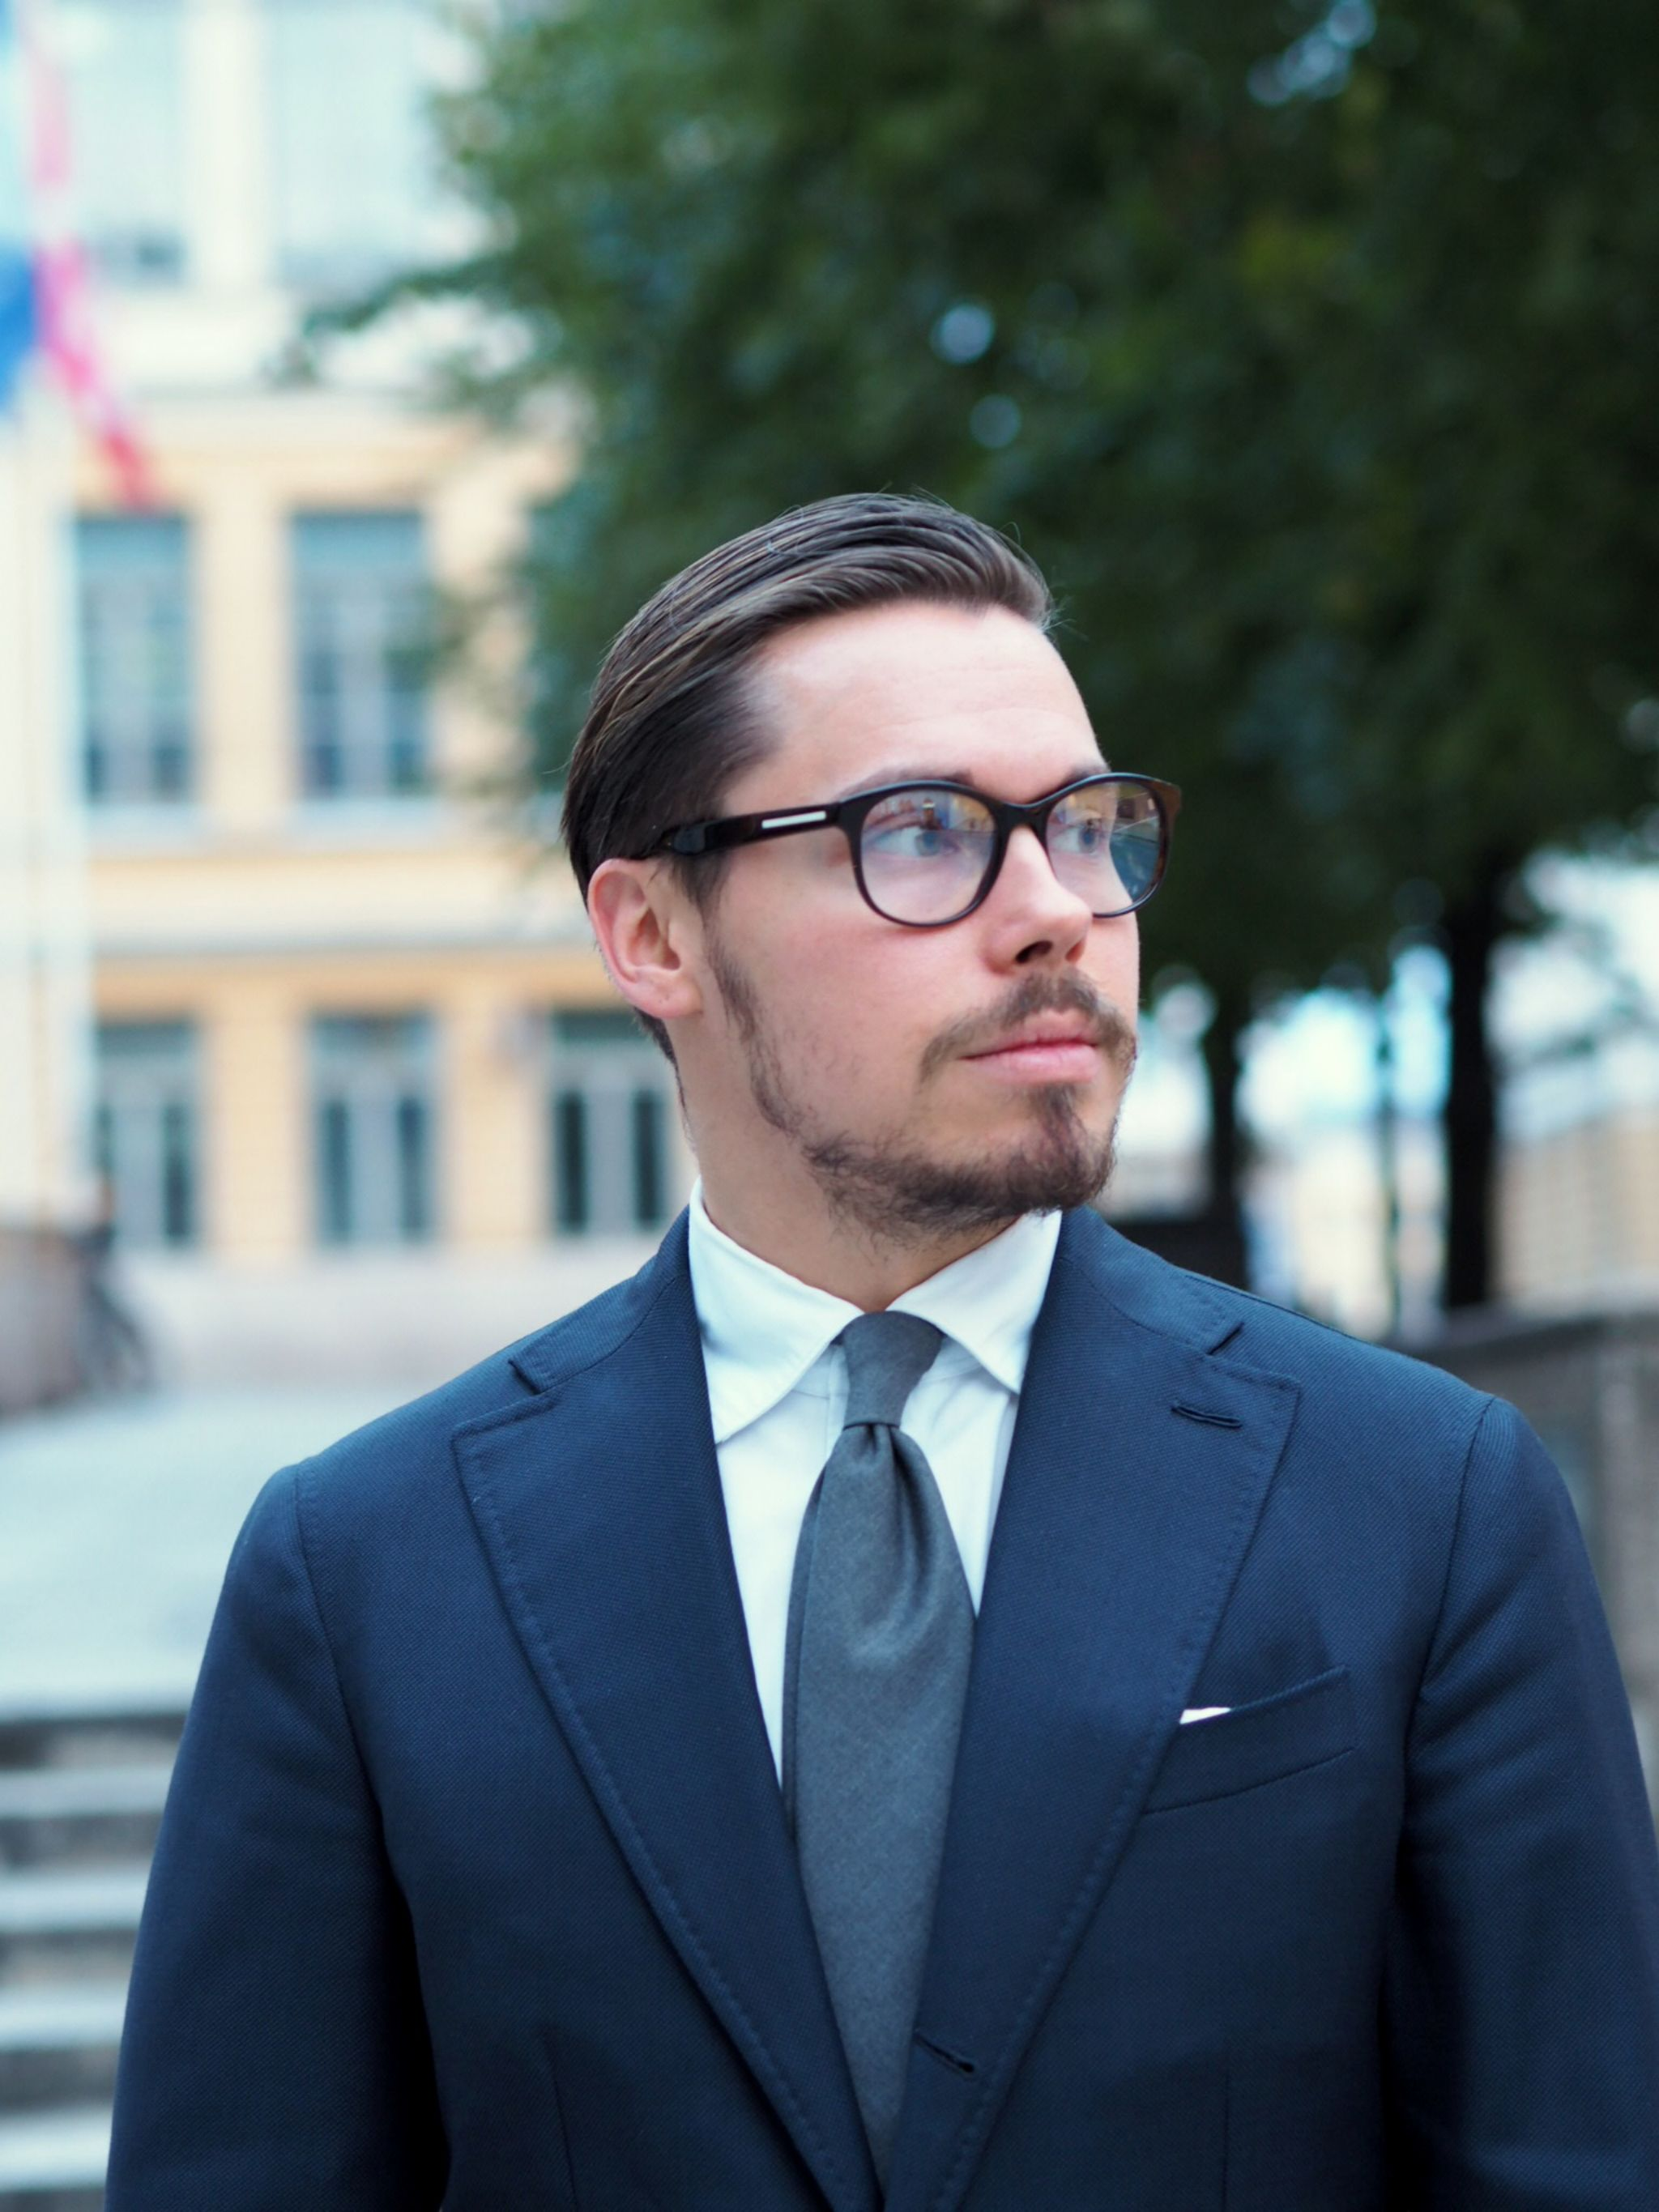 Autumnal business outfits - Blue suit with gray wool tie close-up